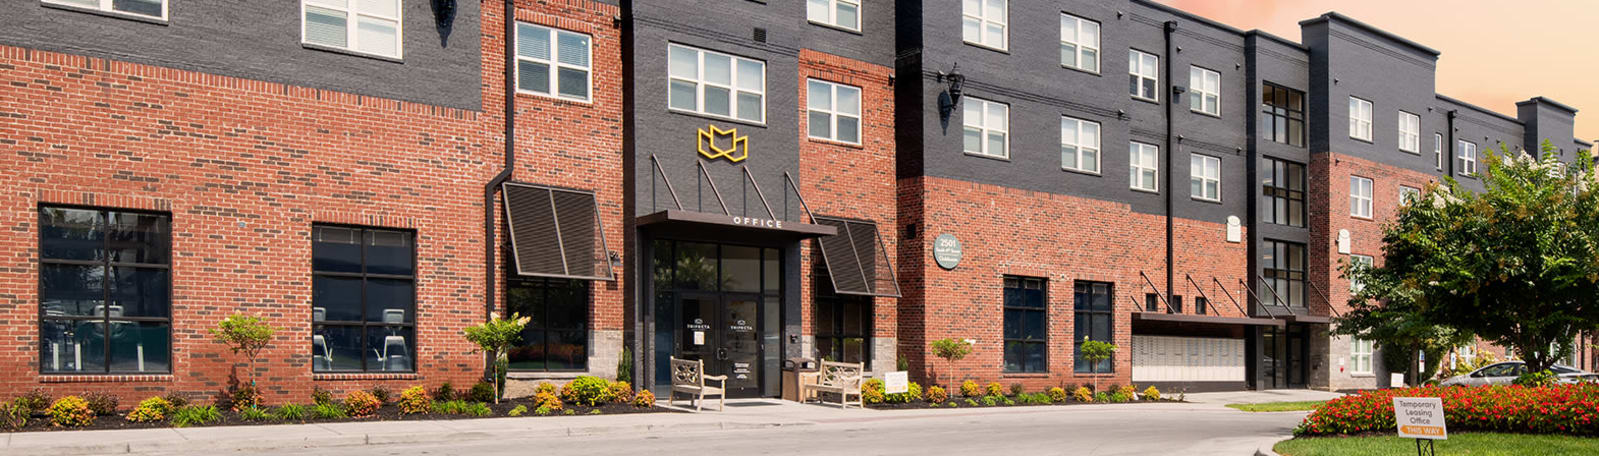 Contact information for Trifecta Apartments in Louisville, Kentucky.